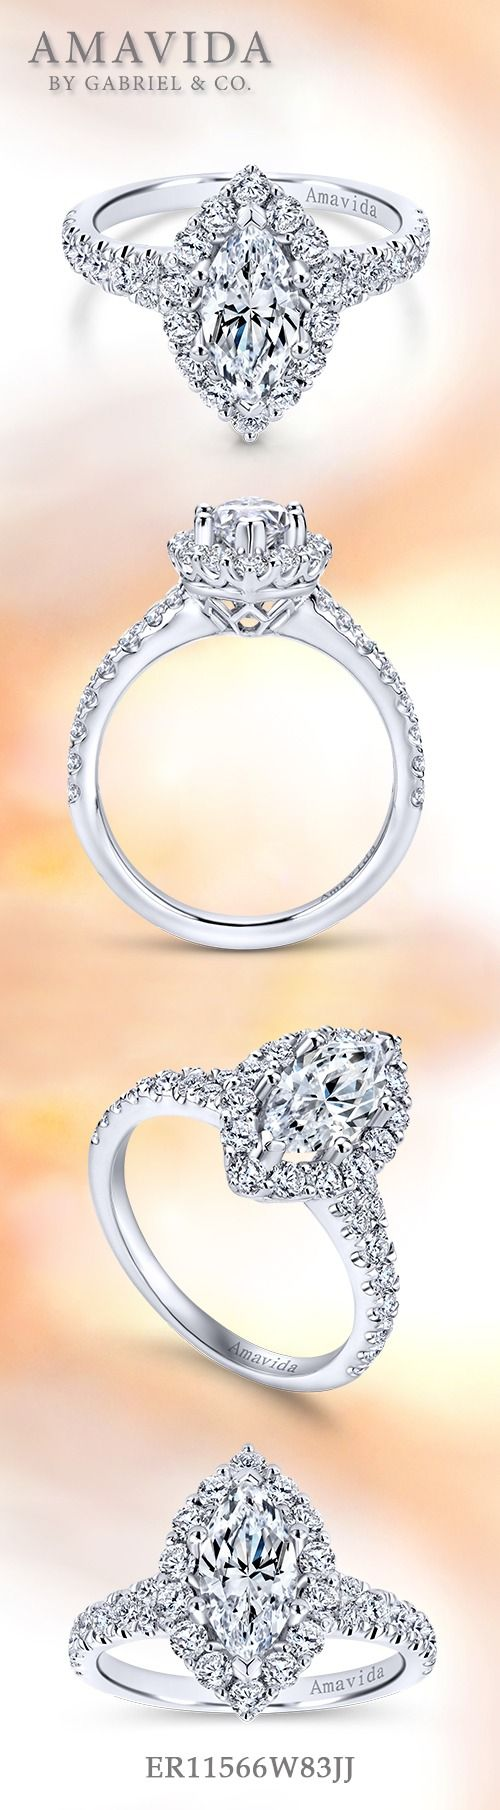 Gabriel & Co.-Voted #1 Most Preferred Fine Jewelry and Bridal Brand.  18k White Gold Marquise Halo Engagement Ring